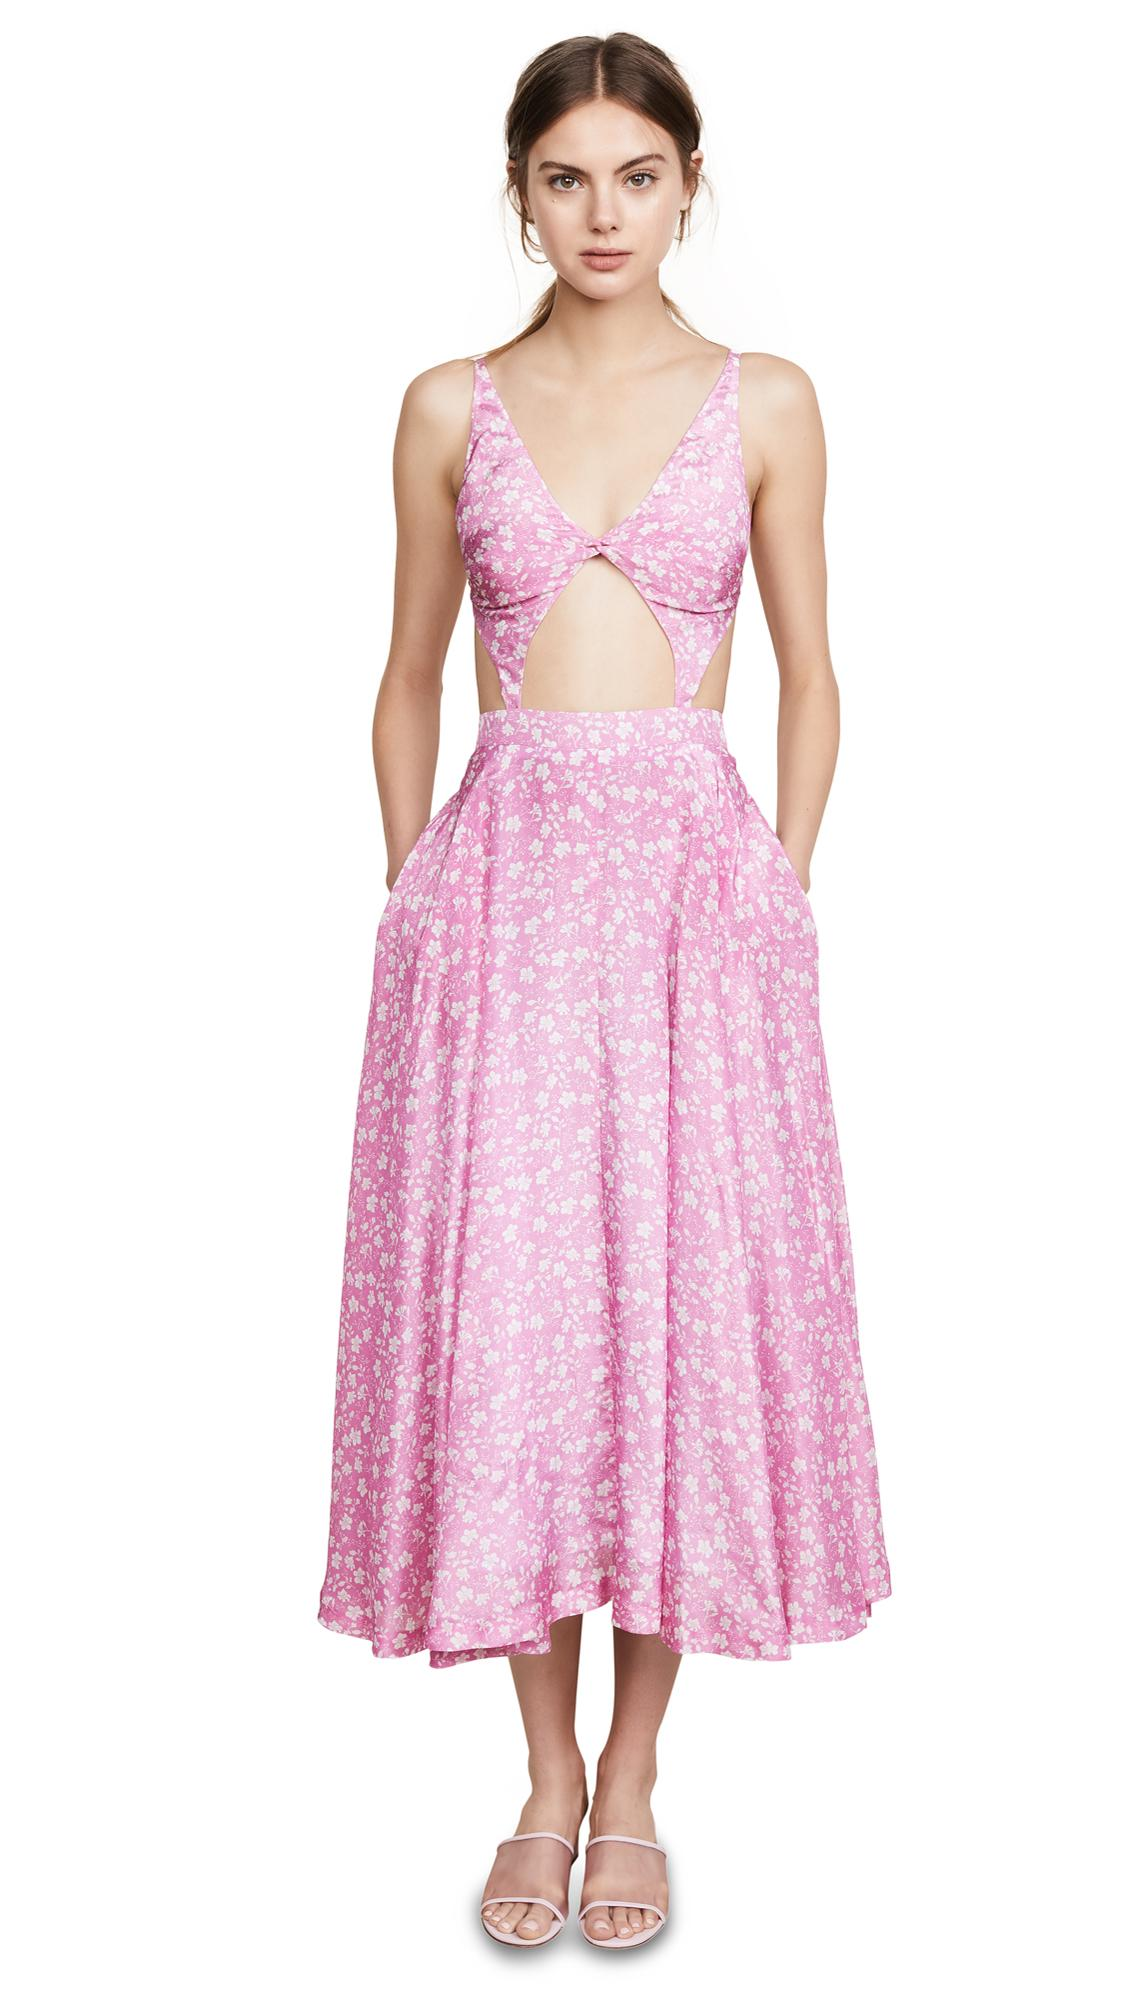 Pushbutton V Neck Cutout Dress In Pink